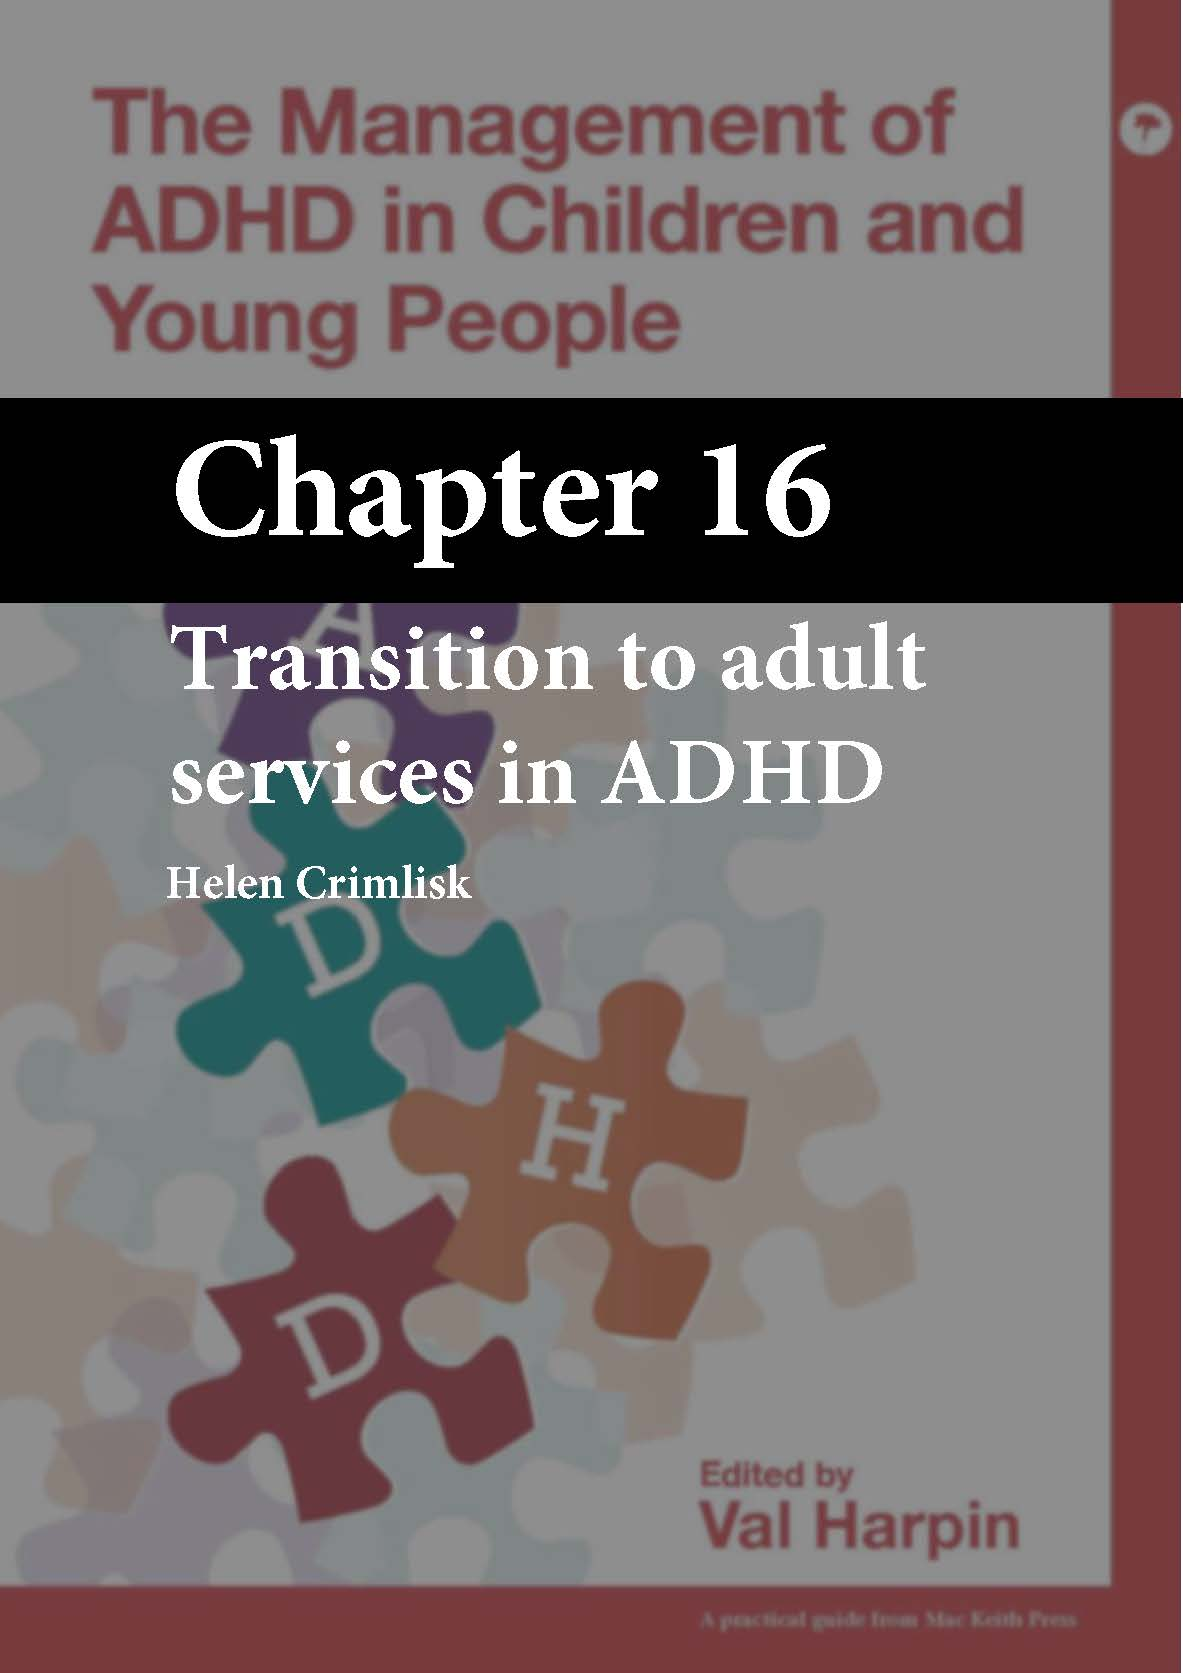 The Management of ADHD in Children and Young People, Harpin, Chapter 16 cover